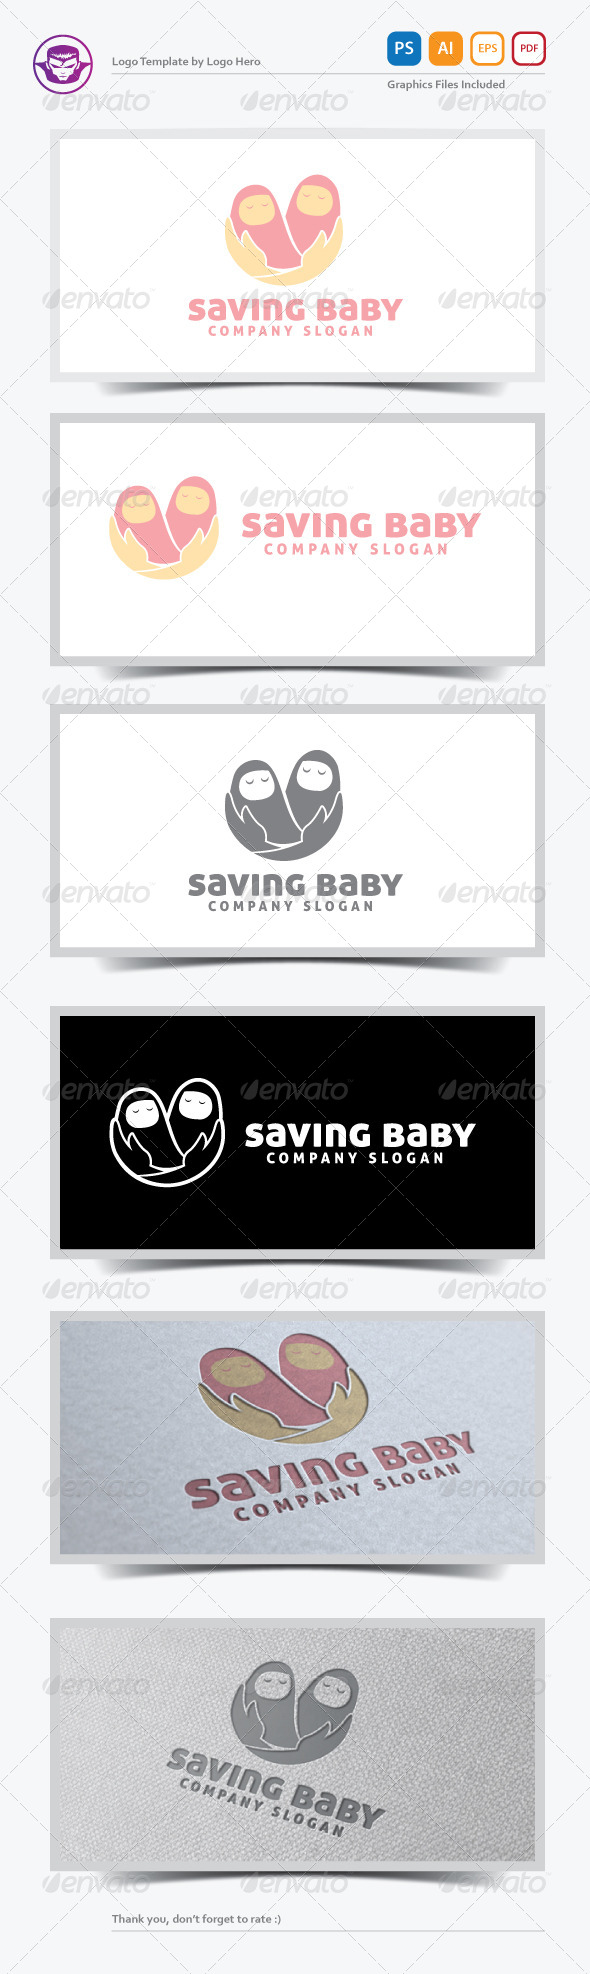 GraphicRiver Saving Baby Logo Template 5584090